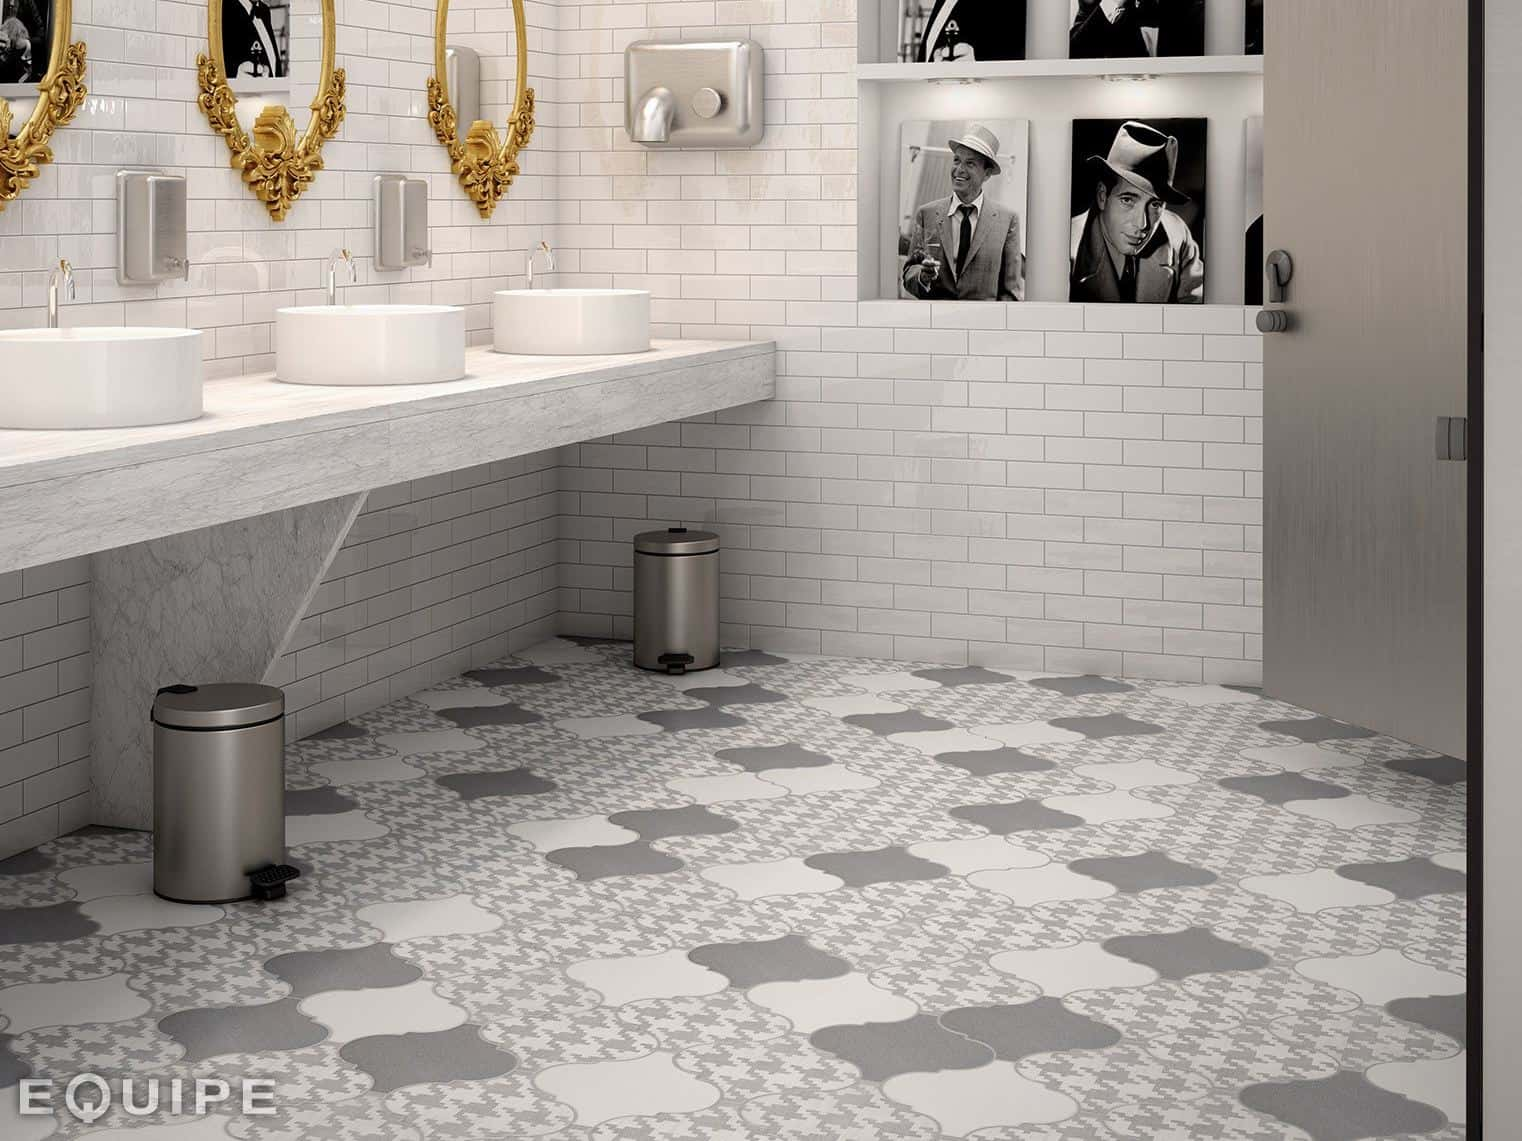 21 arabesque tile ideas for floor wall and backsplash view in gallery arabesque tile floor bathroom grey white 8g dailygadgetfo Image collections